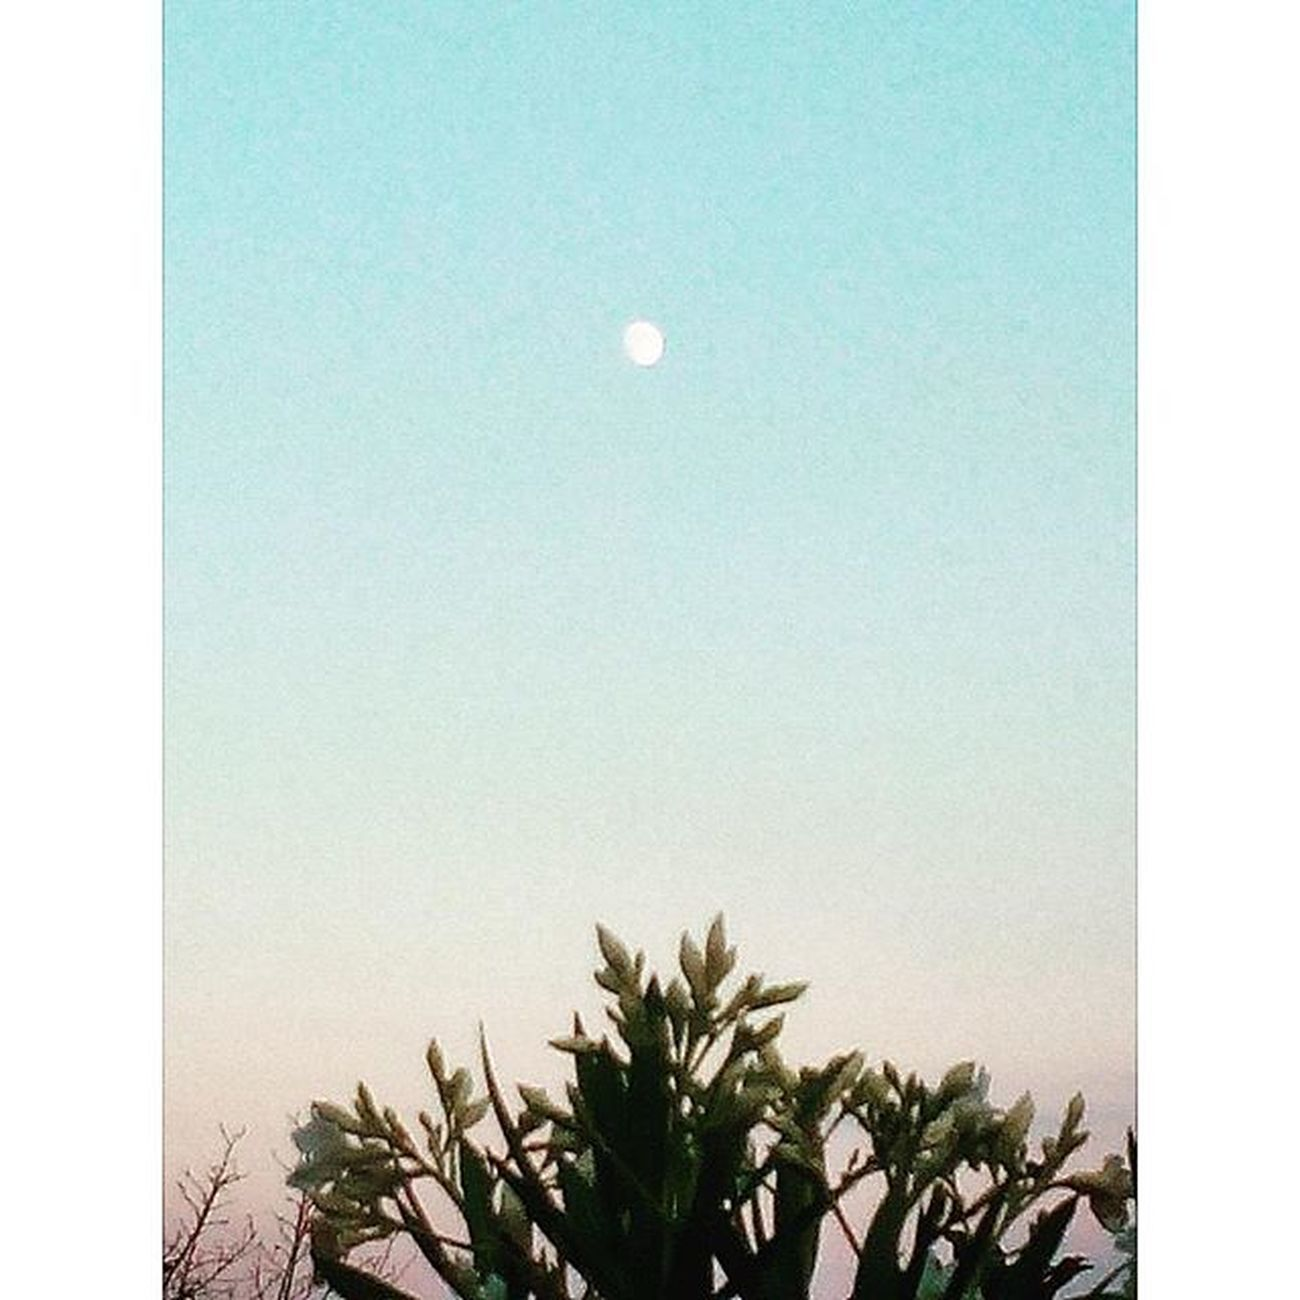 una luna piccolissima Luna Moon Sunset Sky Skylovers Bluesky Nature Naturelovers Igersitalia Igersmarche Lategram Landscape Paesaggio